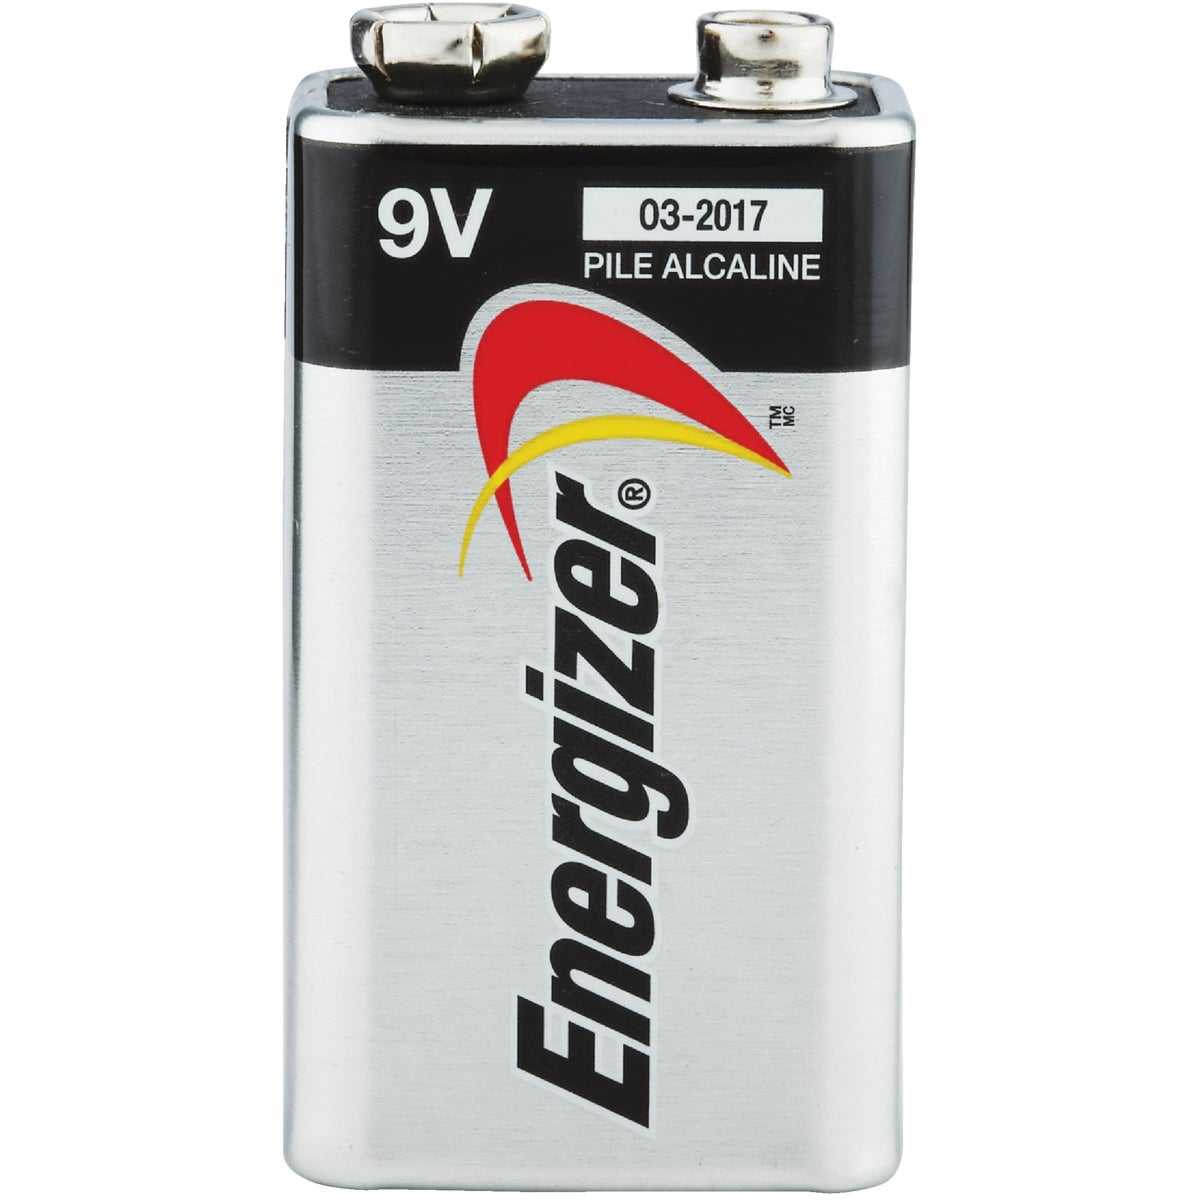 9V ALKALINE BATTERY - 522BP by Energizer